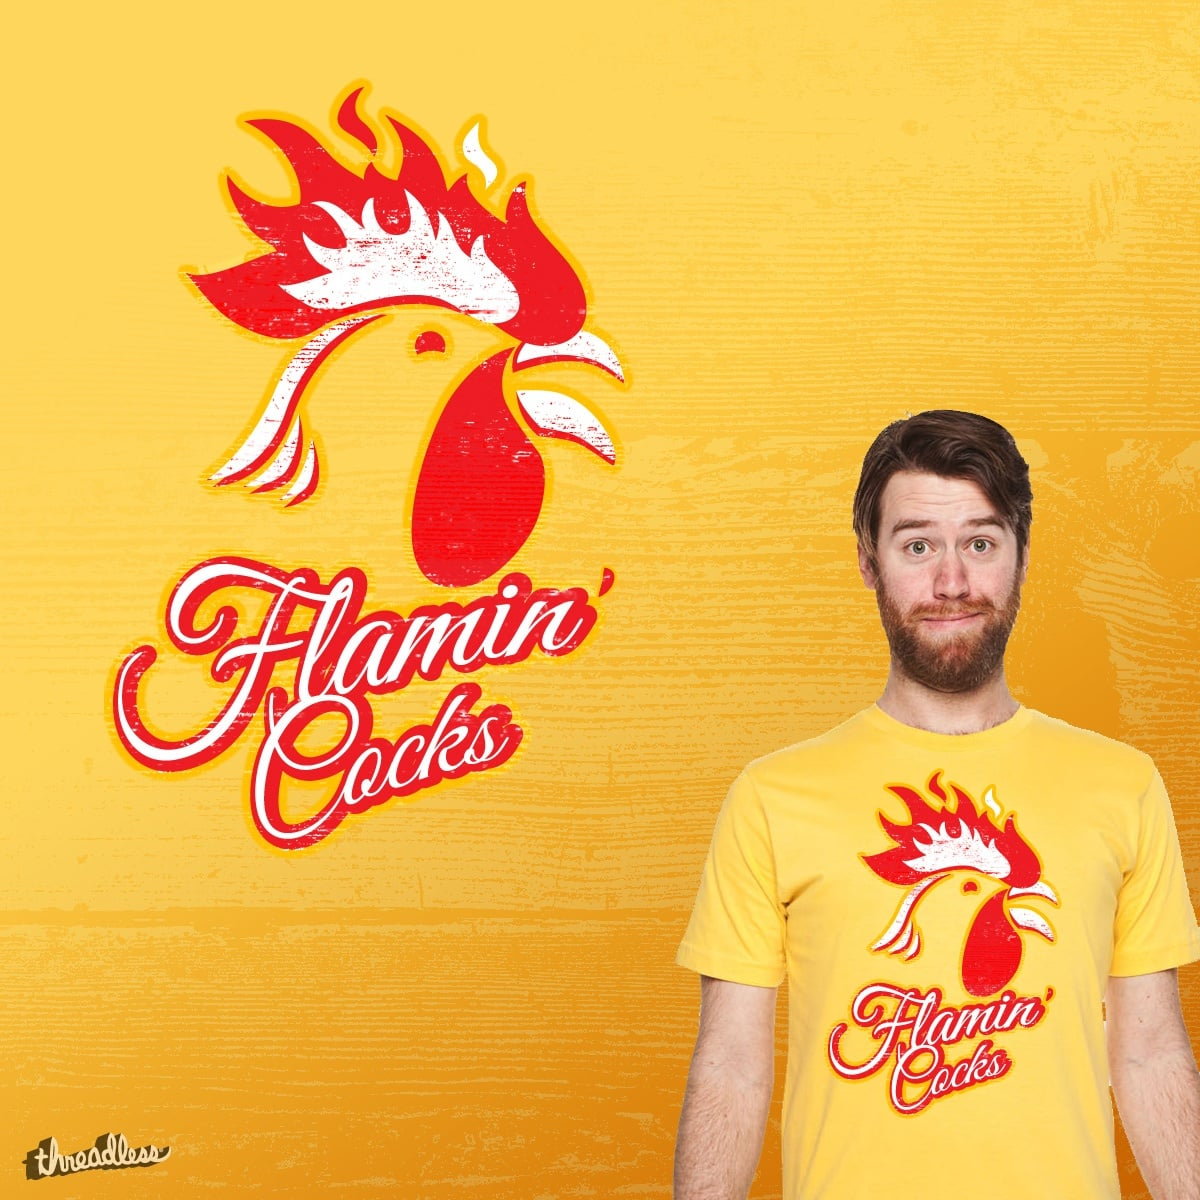 Flamin' Cocks by Highgauge on Threadless